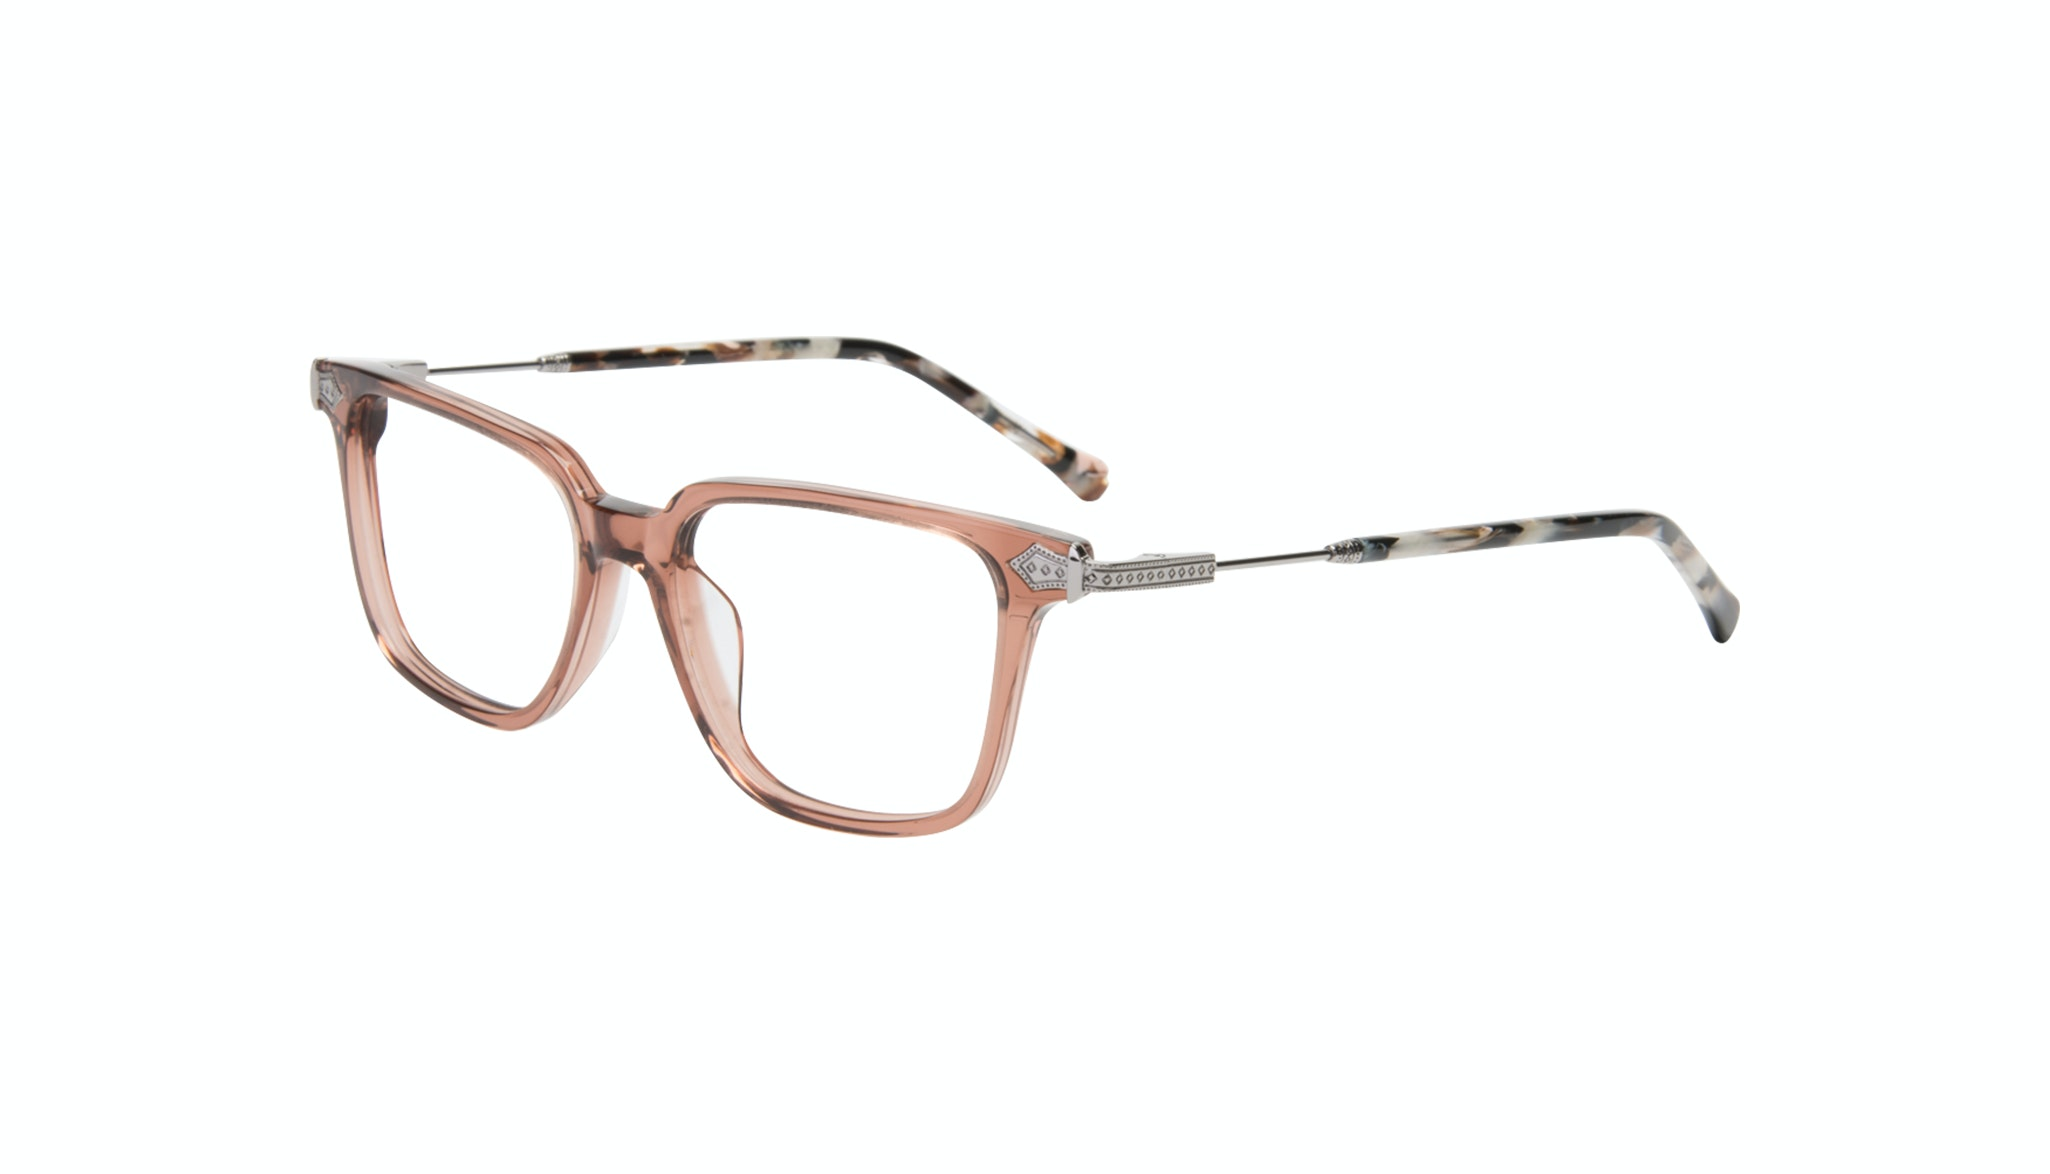 Affordable Fashion Glasses Square Eyeglasses Women Twinkle Truffle Rose Tilt